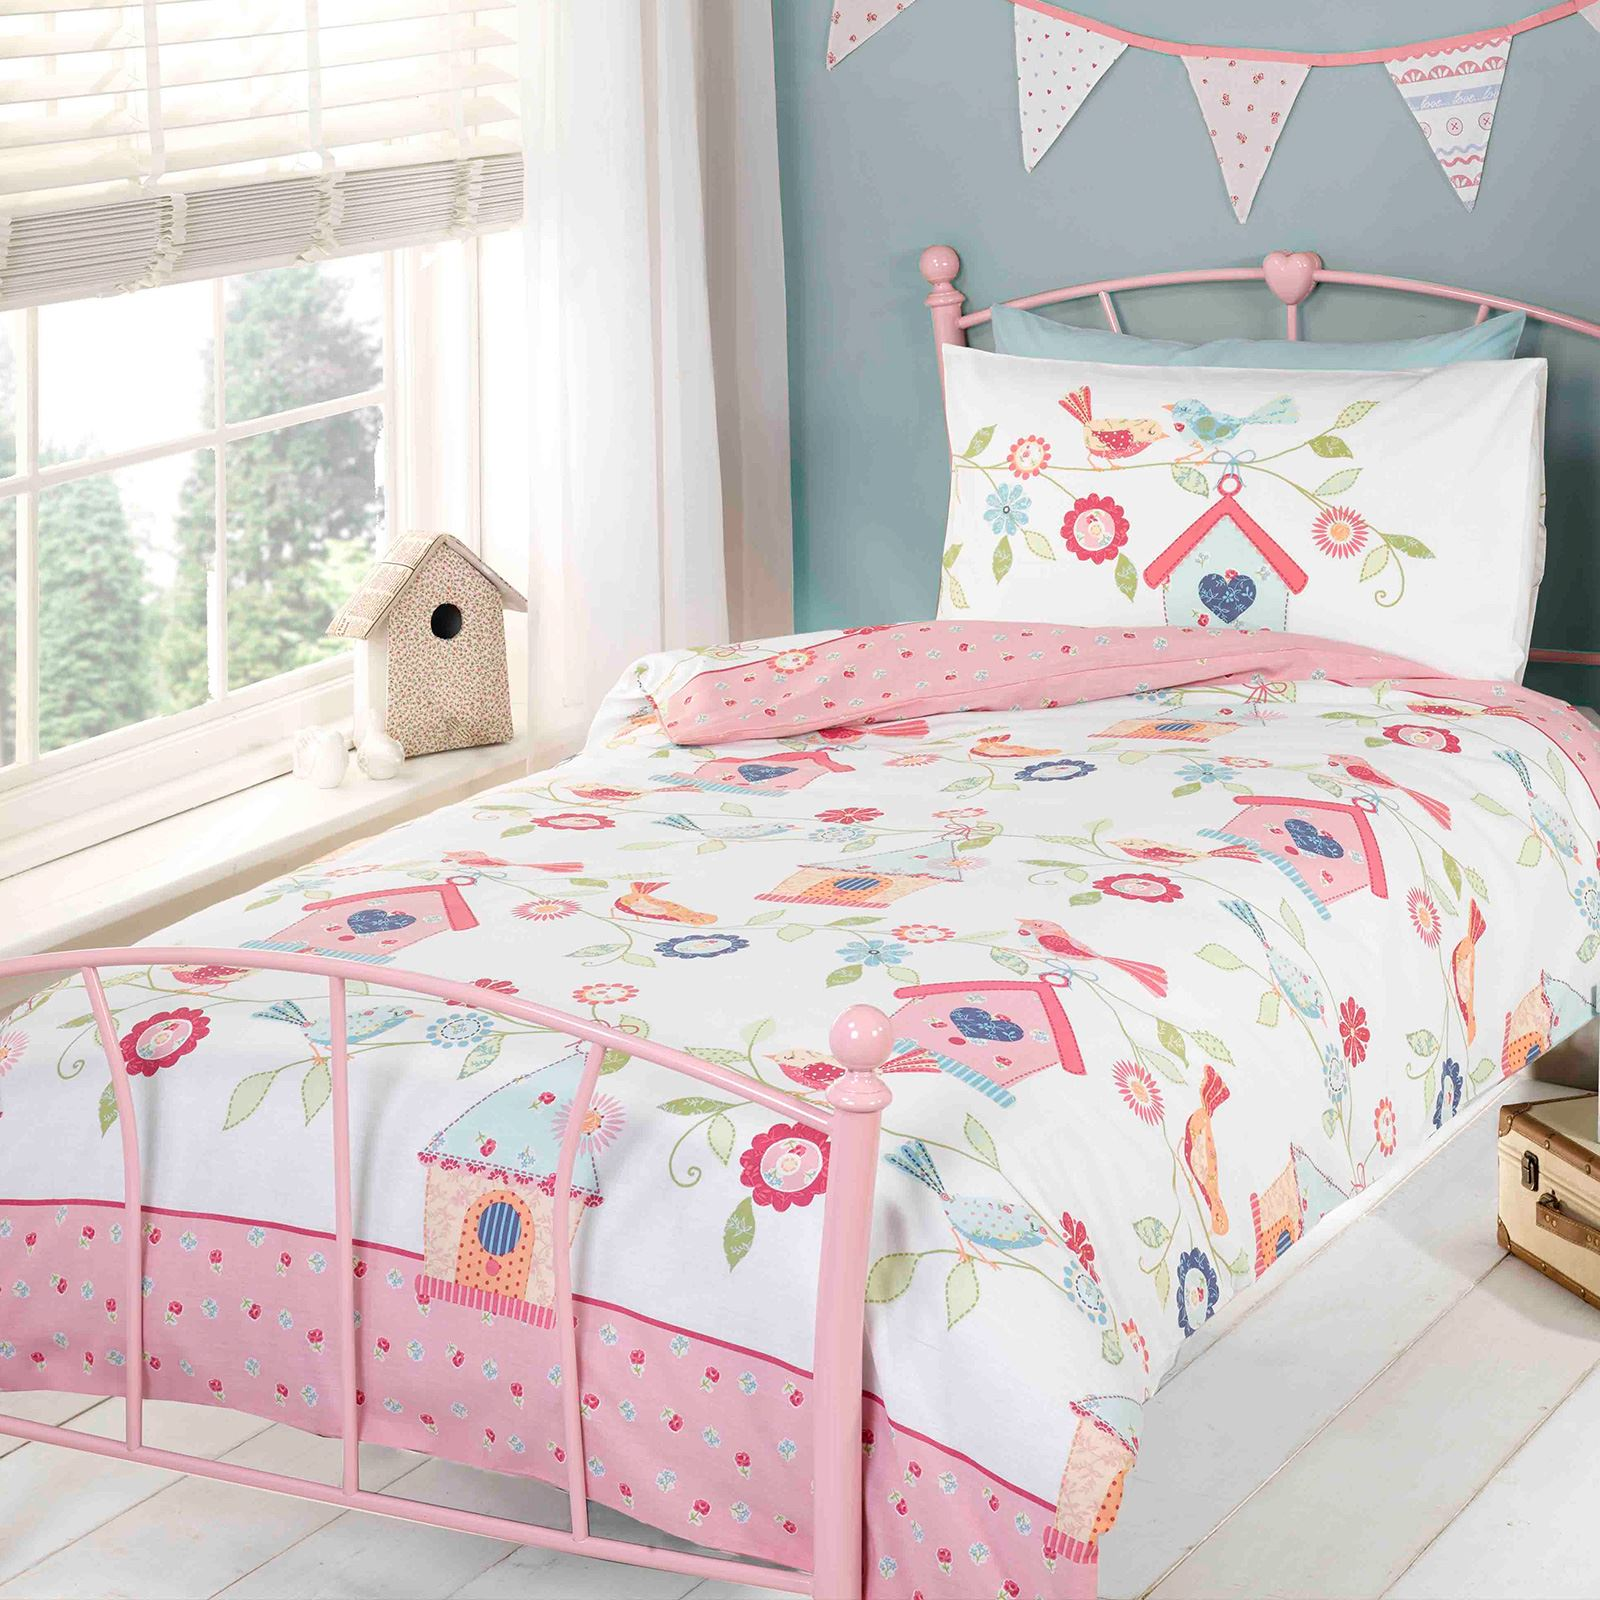 Winnie the pooh toddler bedding - Junior Duvet Cover Sets Toddler Bedding Dinosaur Christmas